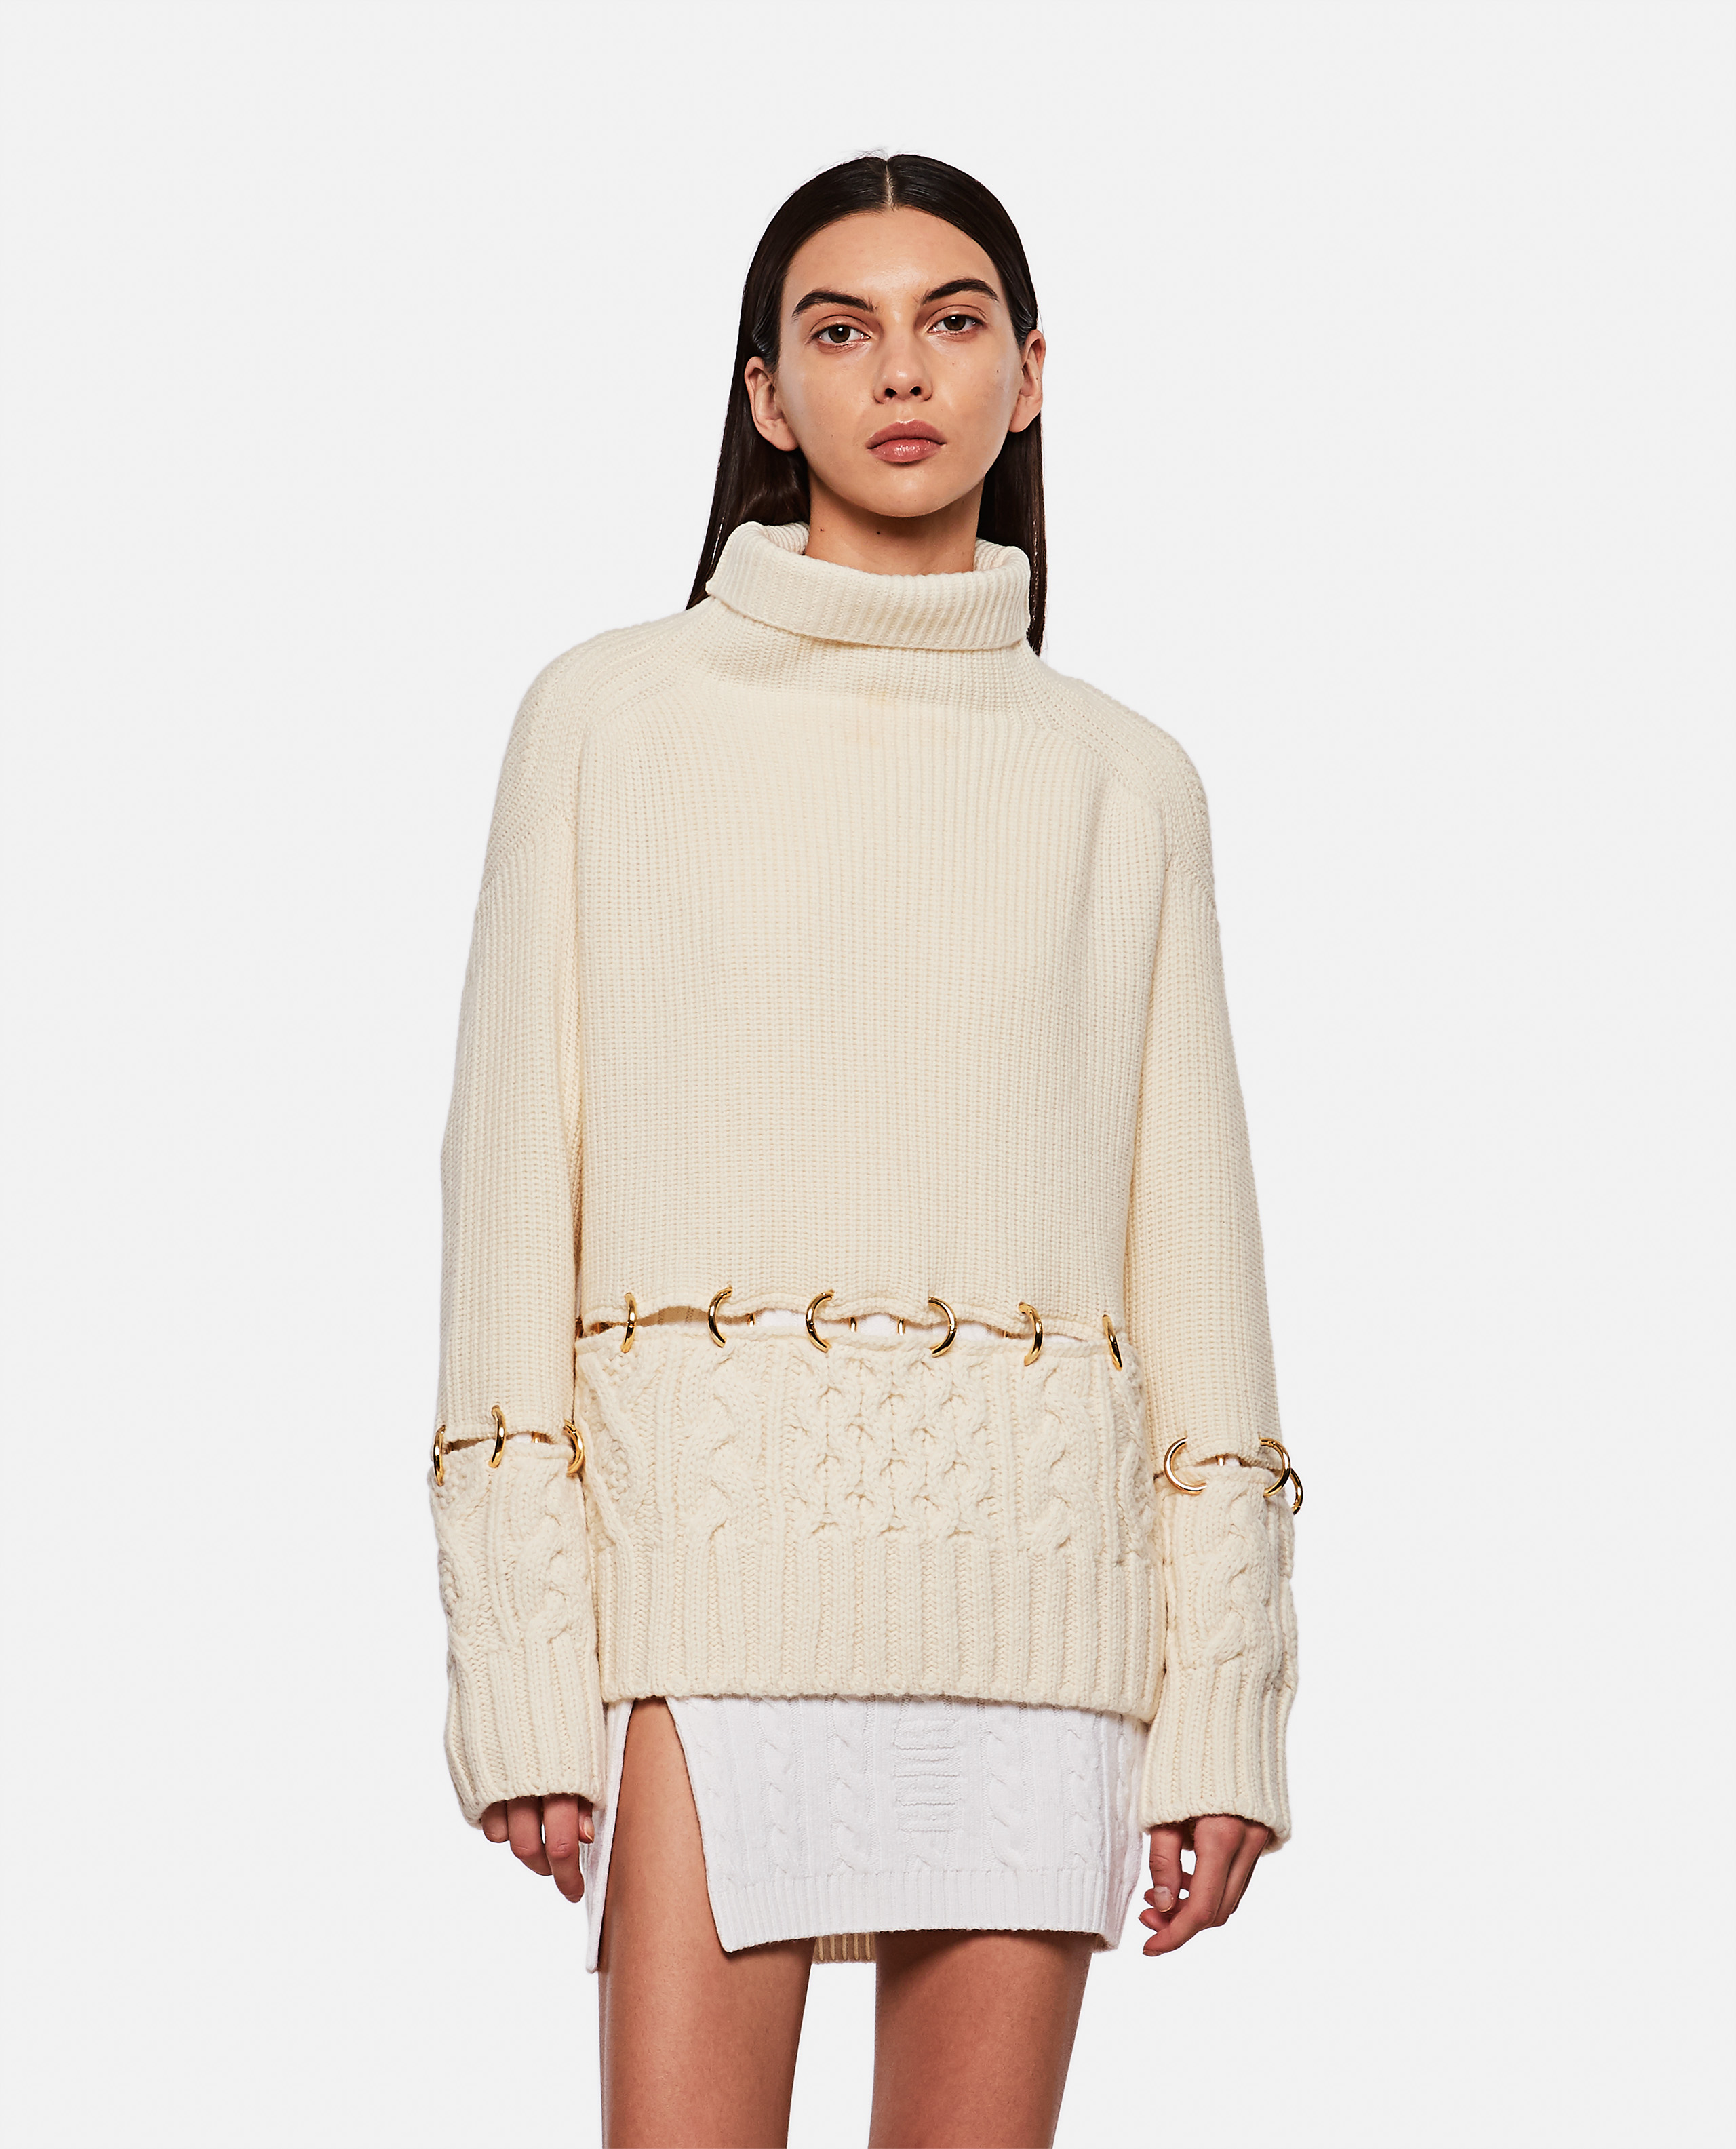 Wool sweater with ring detail